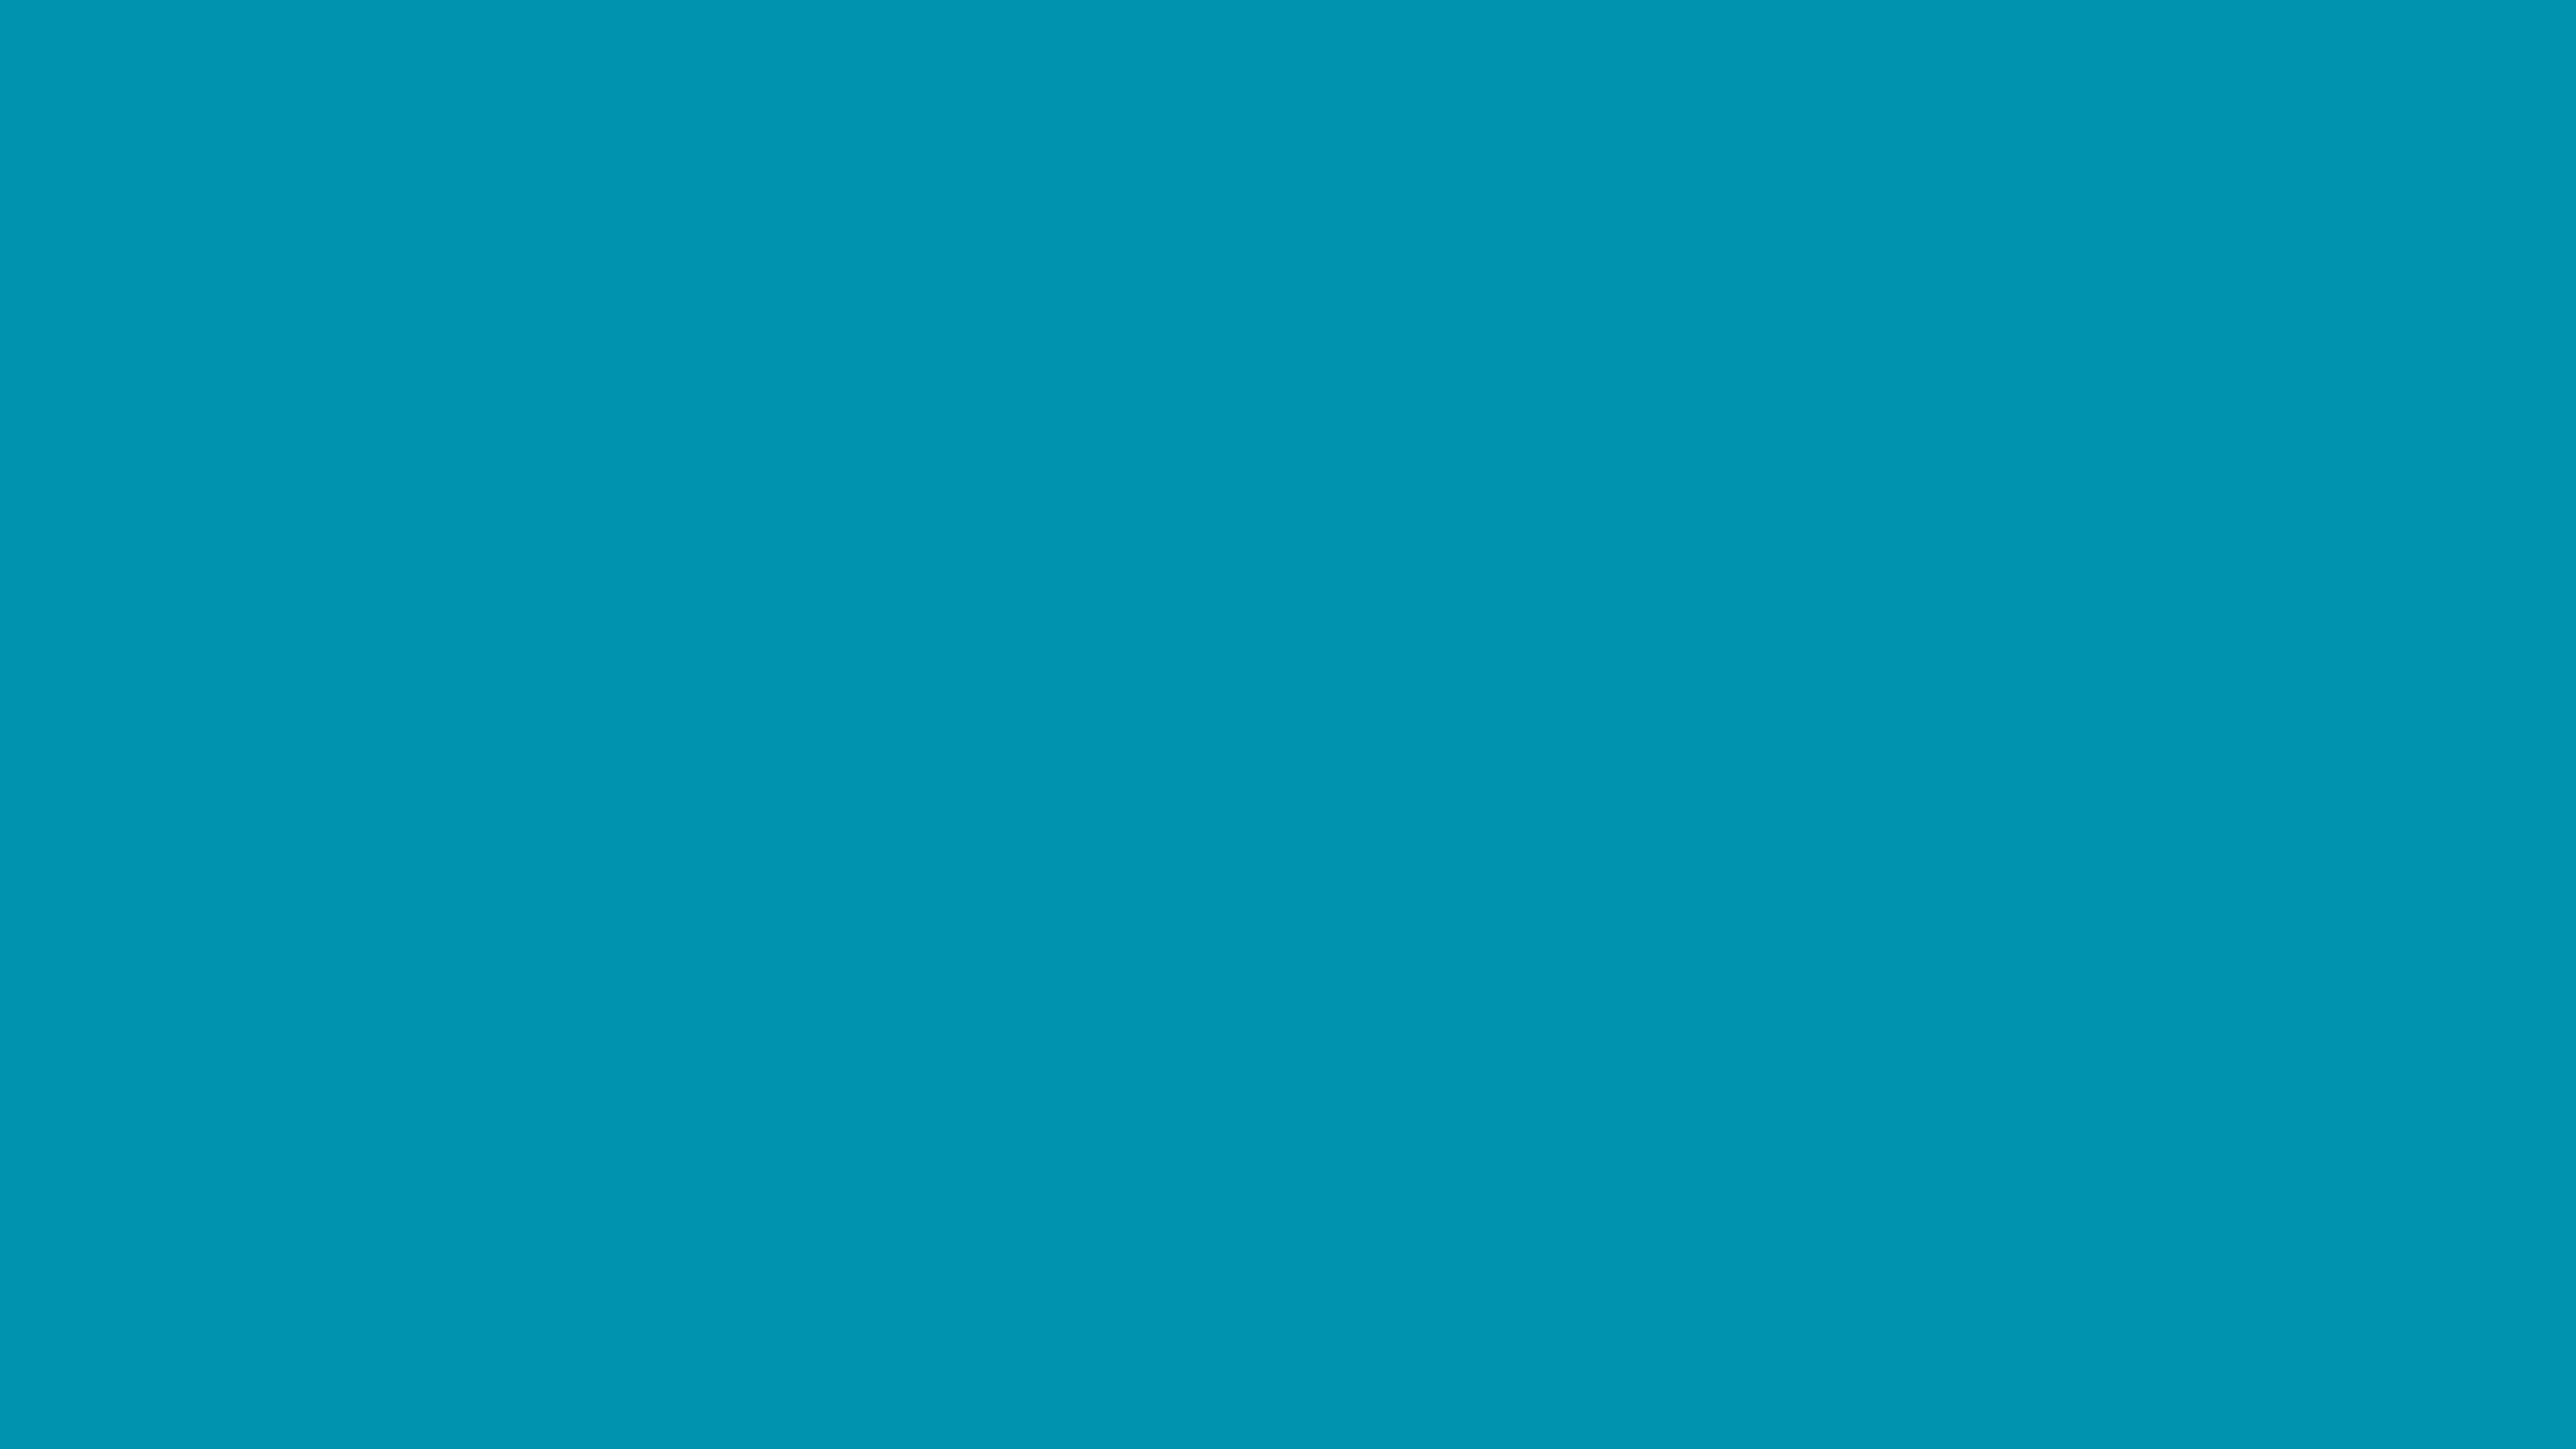 5120x2880 Blue Munsell Solid Color Background